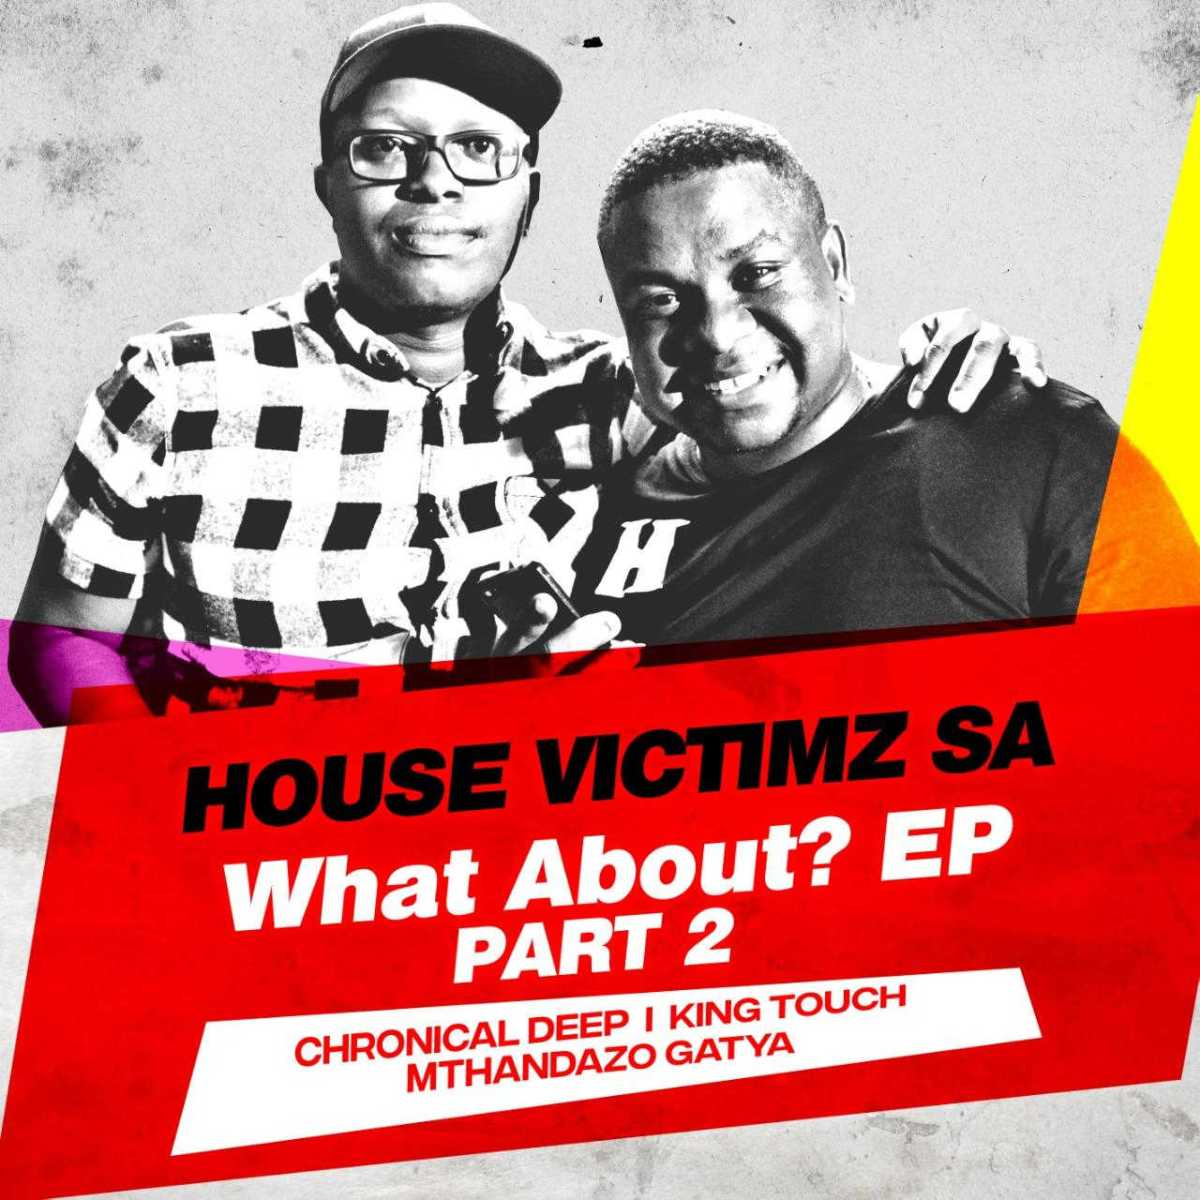 House Victimz - What About EP Part 2